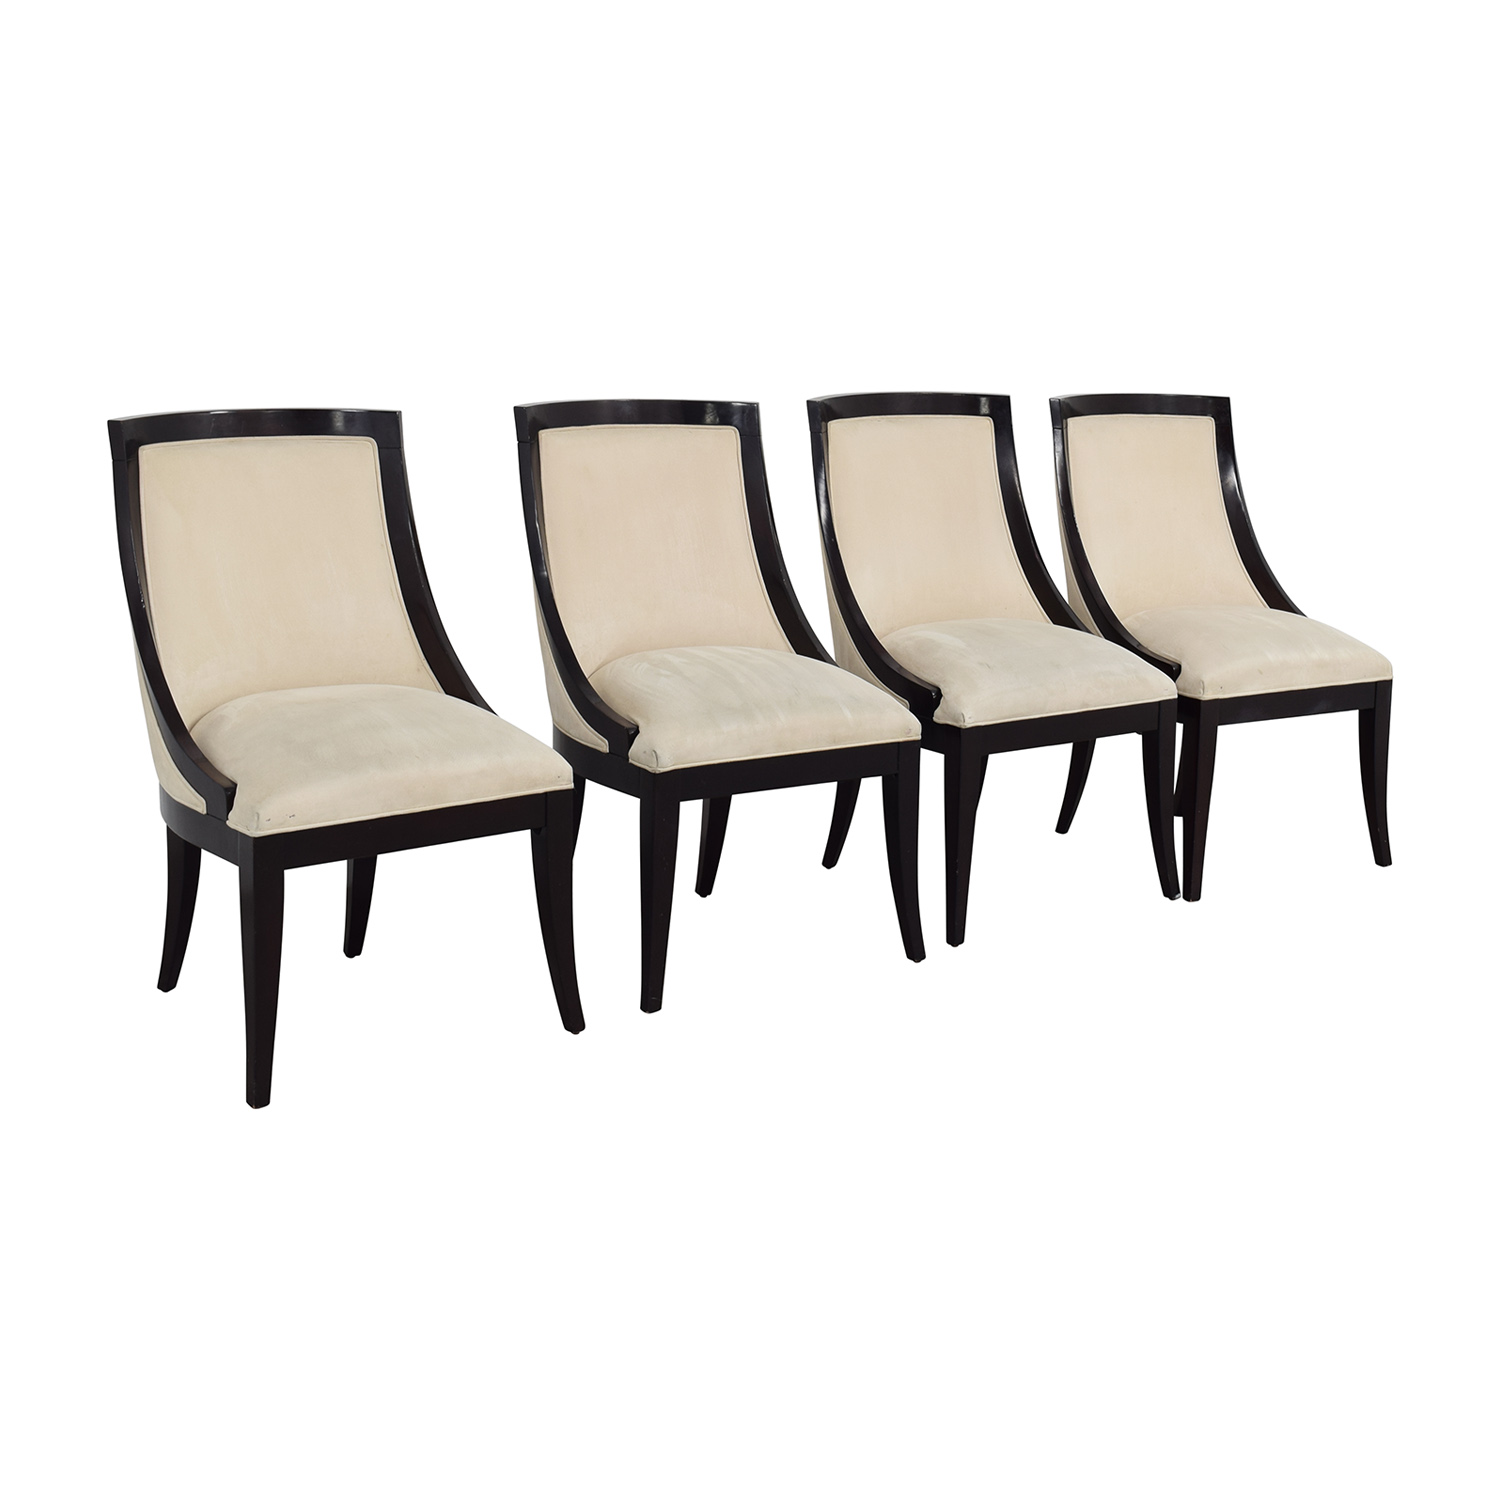 70 off restoration hardware restoration hardware cream for Cream dining room chairs sale